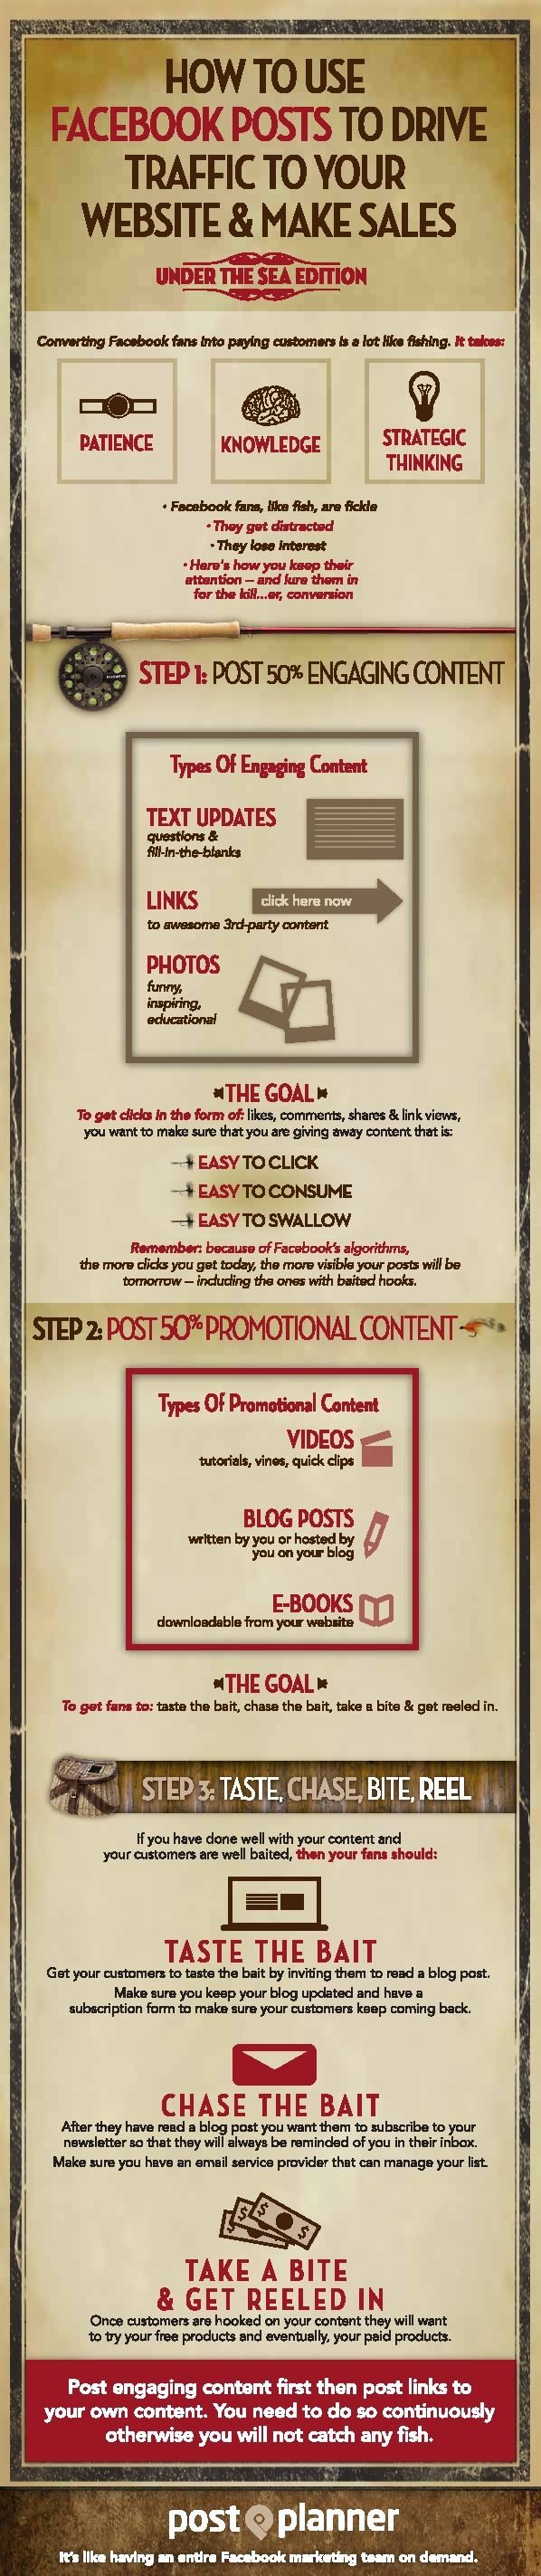 How to use Facebook posts to drive traffic to your website.